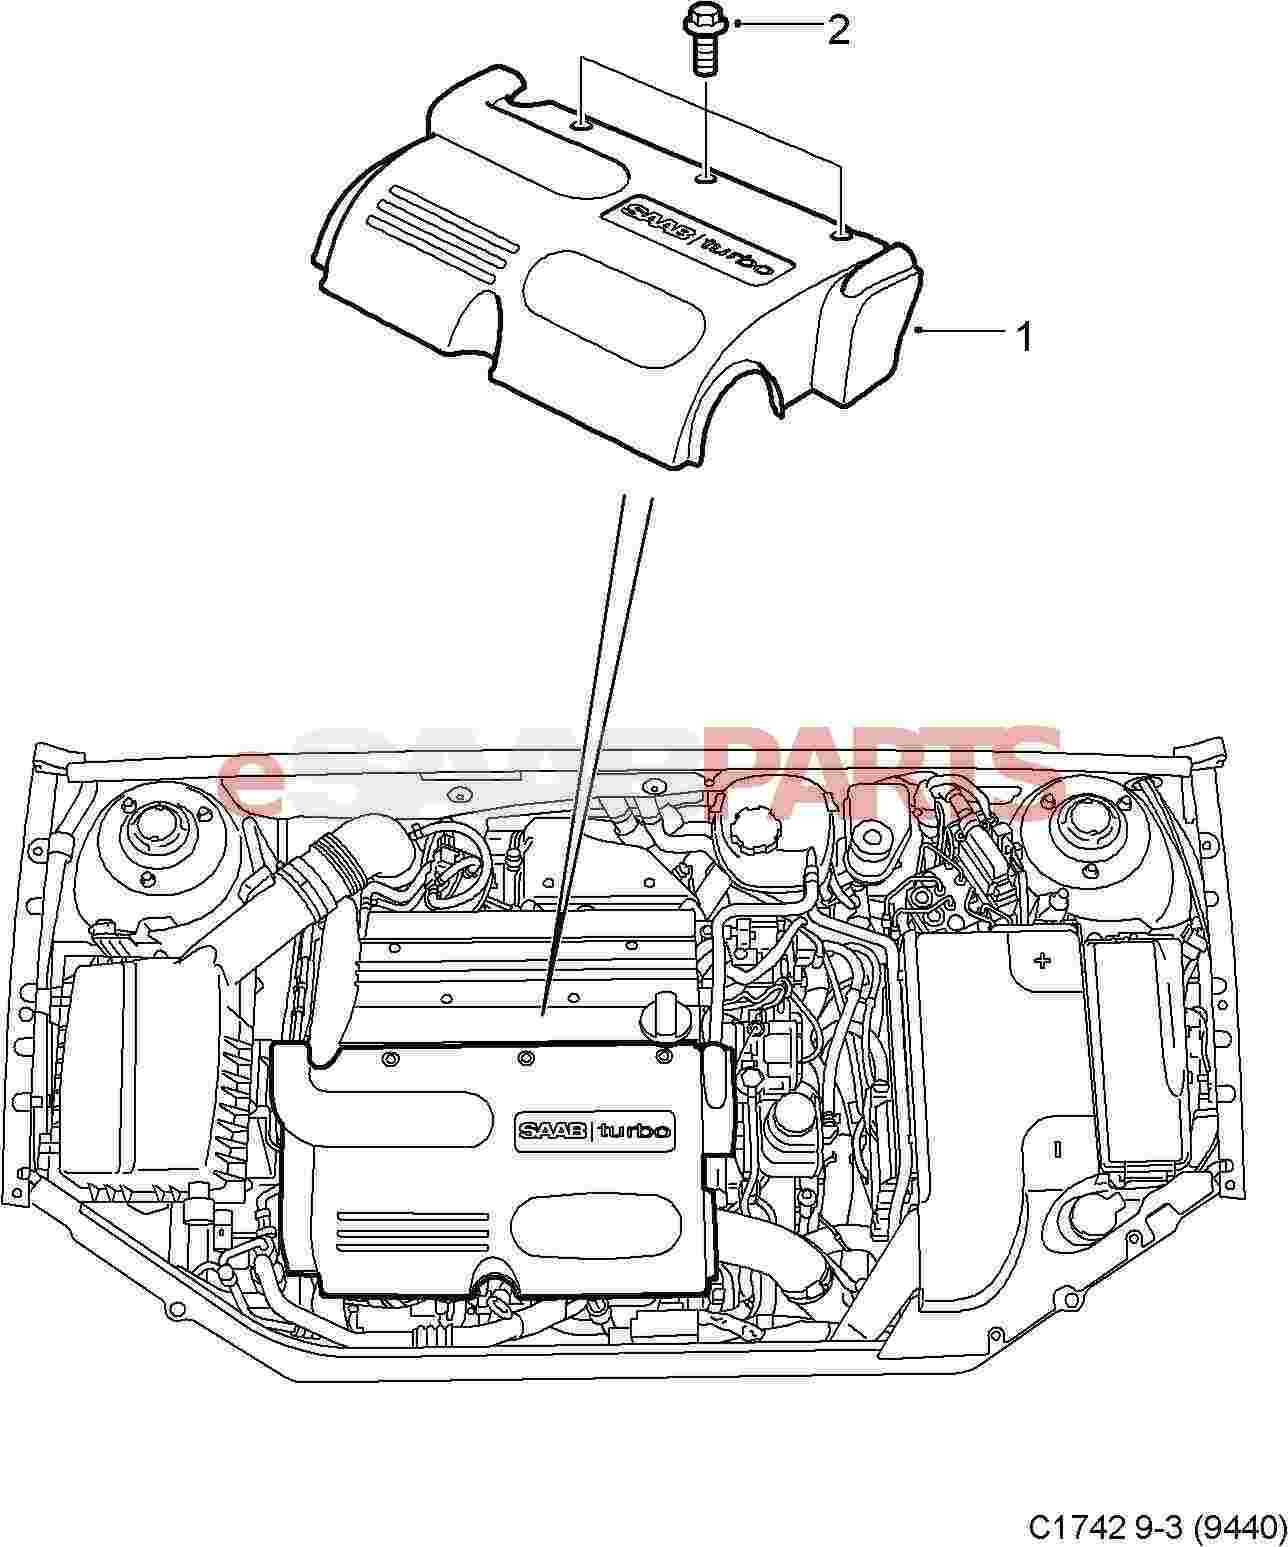 [GJFJ_338]  DIAGRAM] 2003 Saab 93 Engine Diagram FULL Version HD Quality Engine Diagram  - THROATDIAGRAM.SAINTMIHIEL-TOURISME.FR | 2004 Saab Engine Diagram |  | Saintmihiel-tourisme.fr